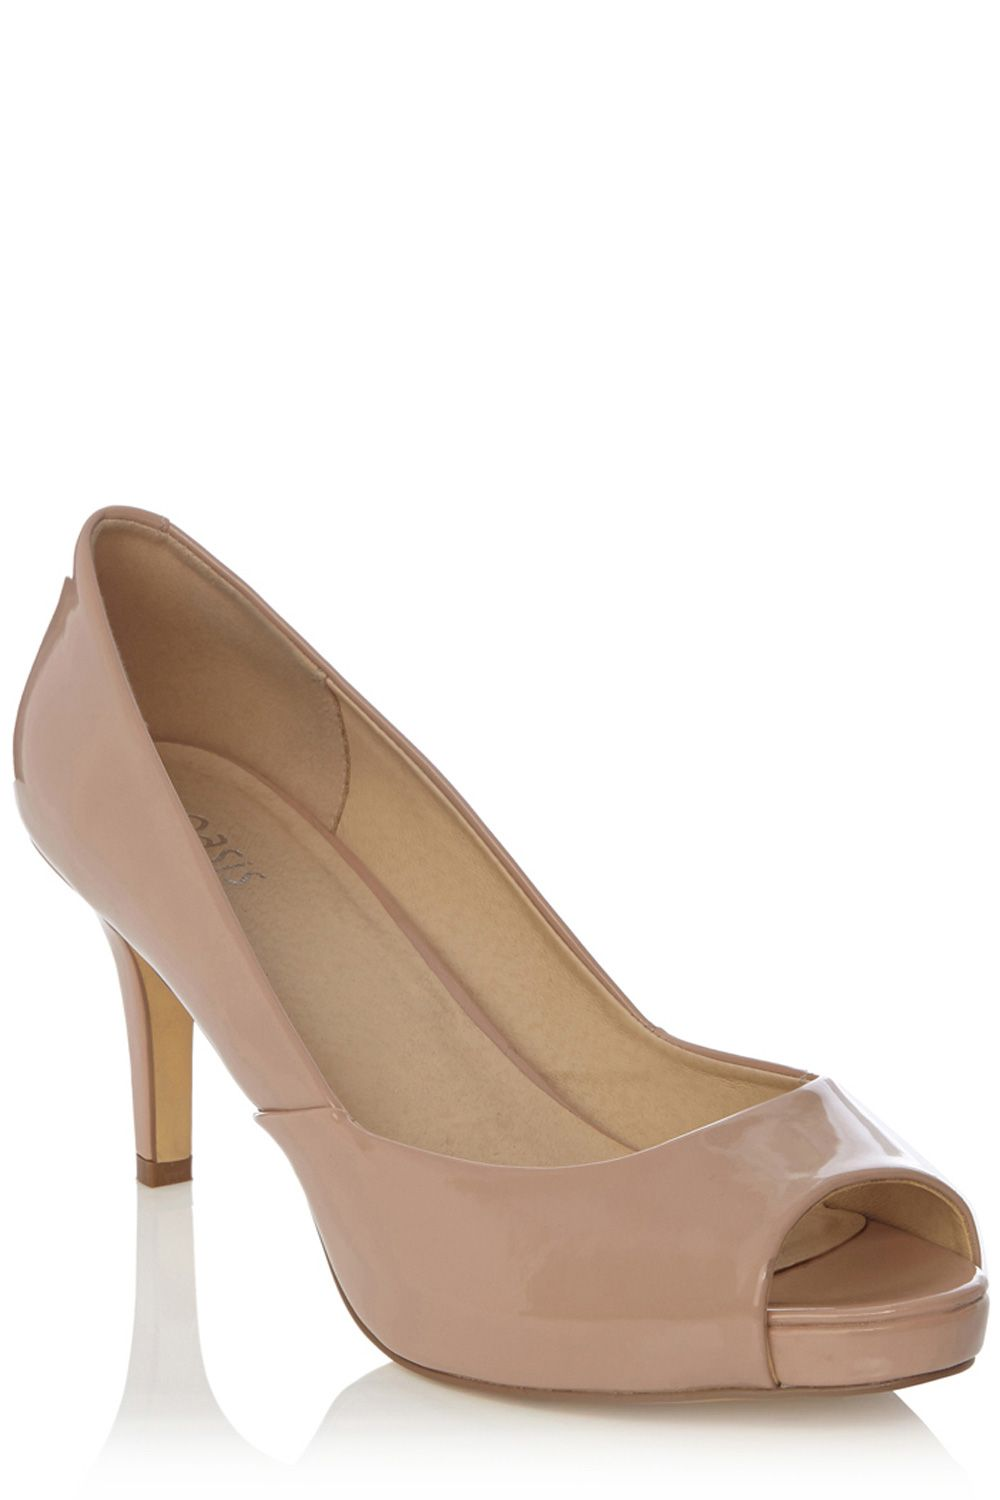 Patent peep toe court shoe